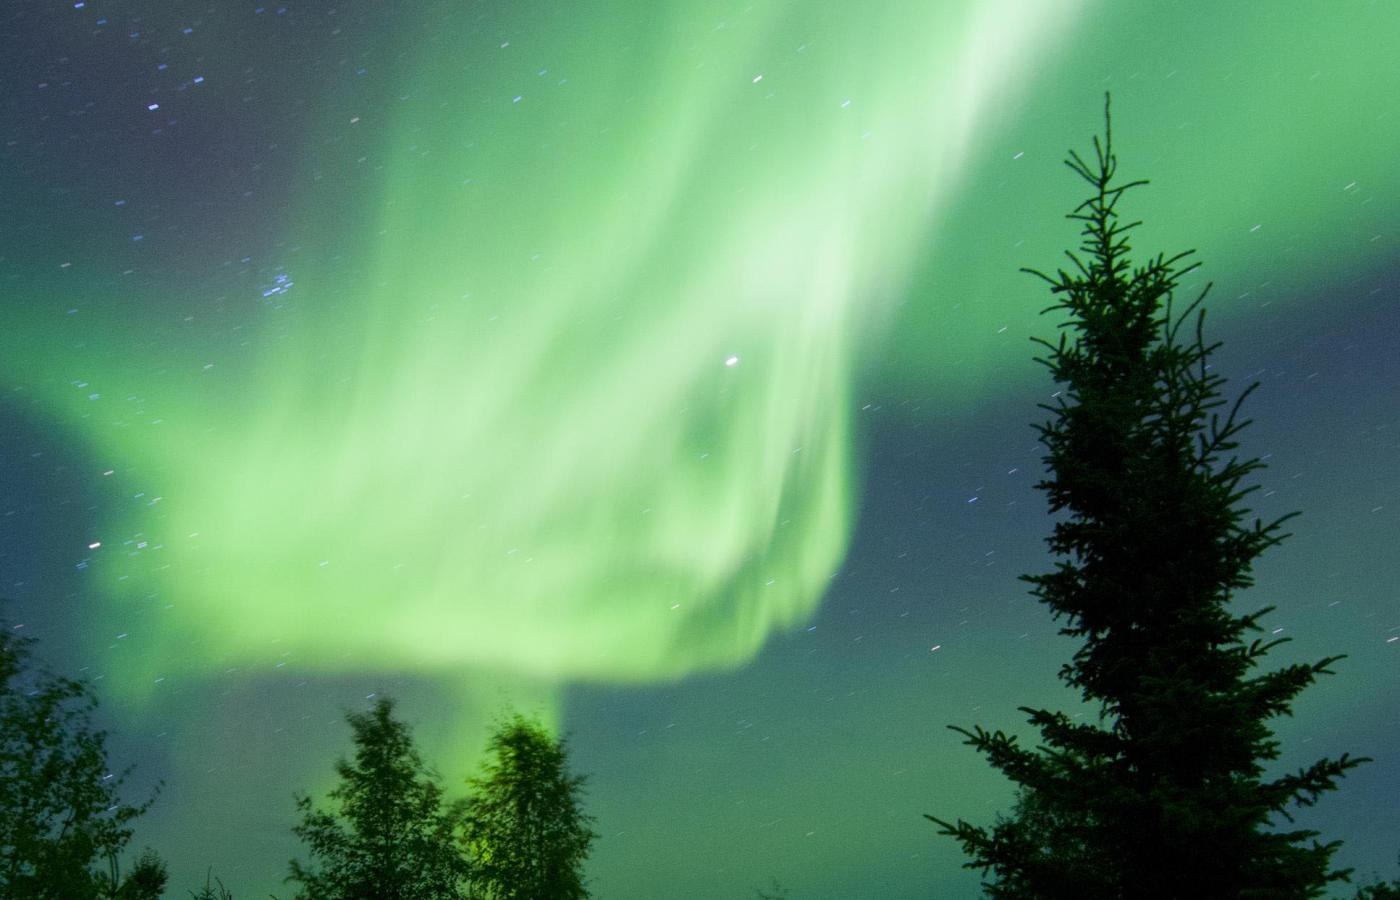 the green northern lights illuminate the northern sky